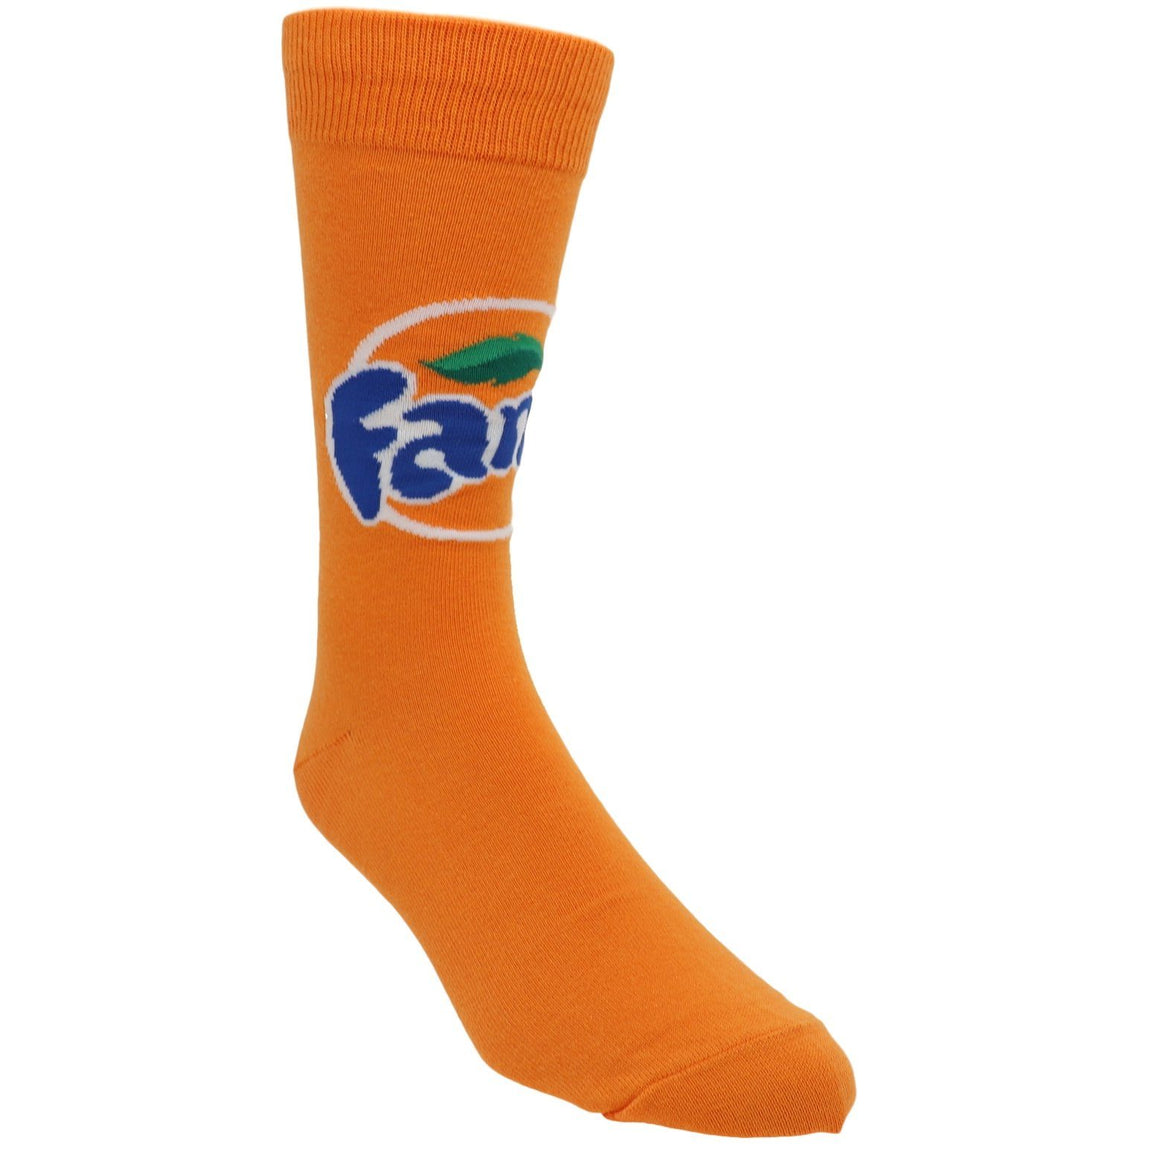 Fanta Men's Socks in Orange by SockSmith - The Sock Spot